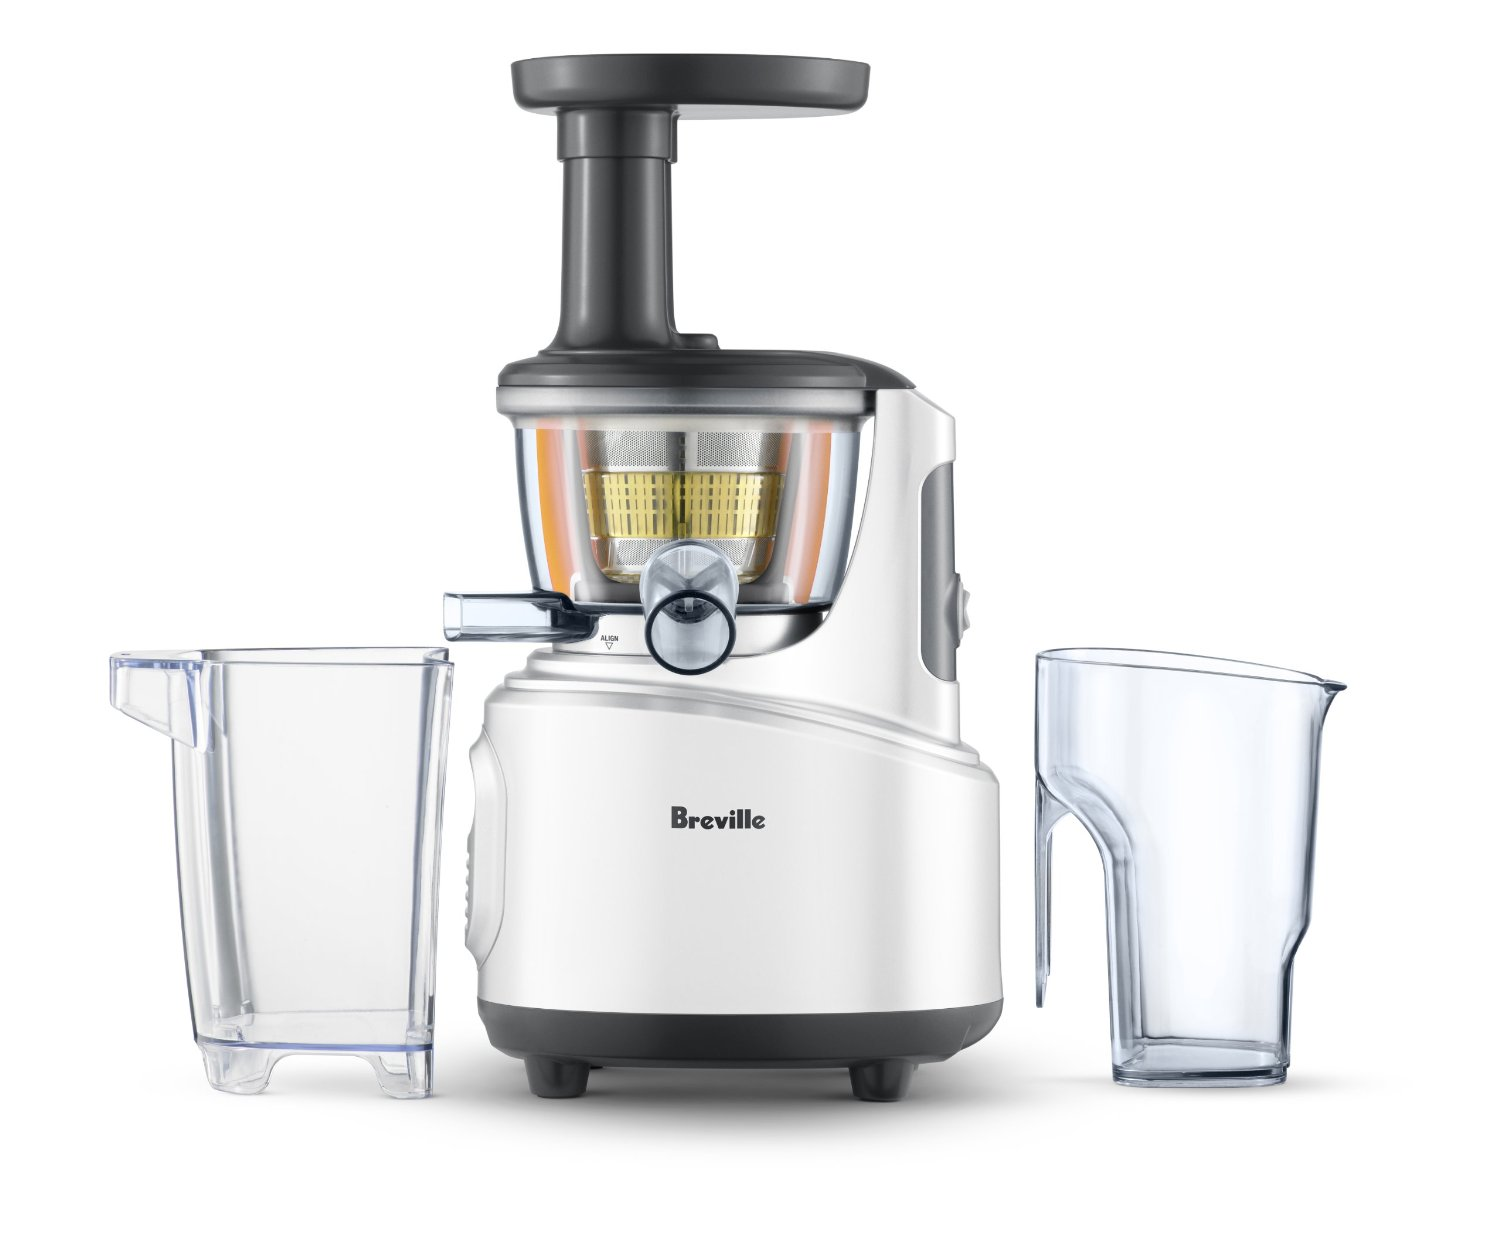 Breville Juicer (Image 4 of 10)